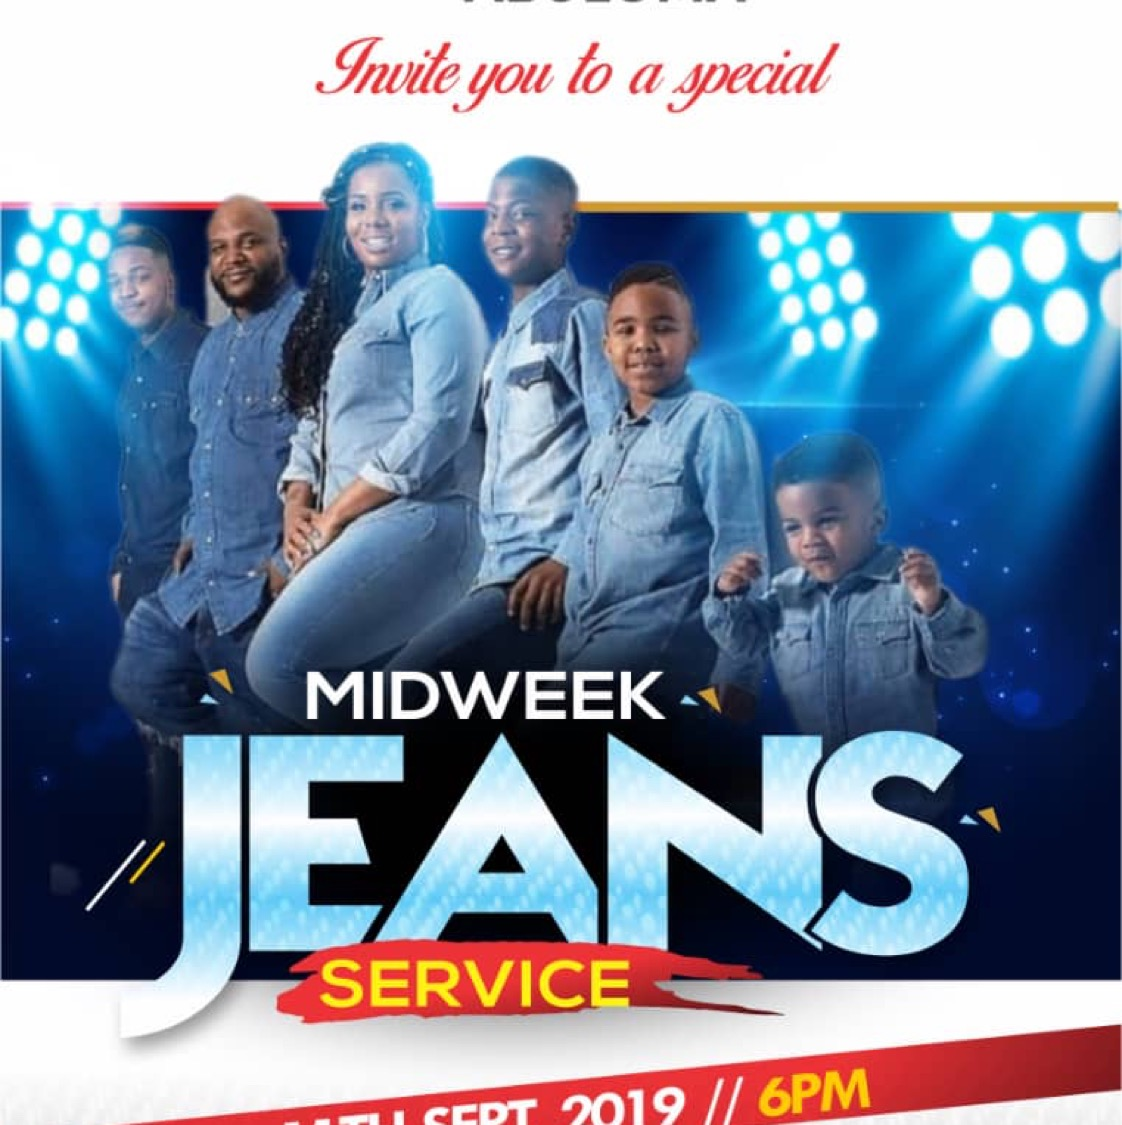 Mid week Jean service with